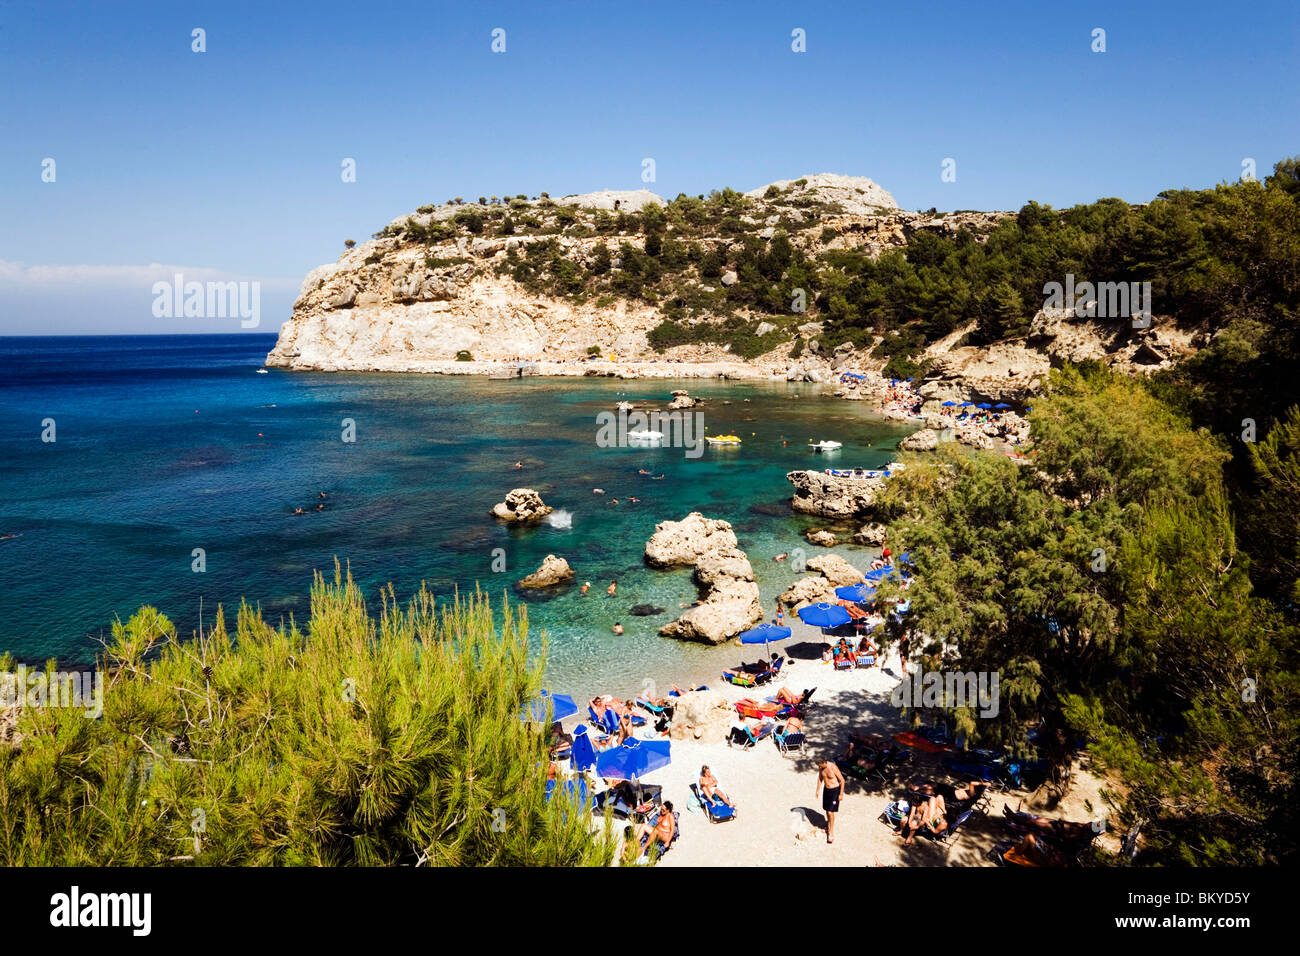 View over beach at Anthony Quinn Bay, film location of the film The Guns of Navarone, Falirakis, Rhodes, Greece - Stock Image